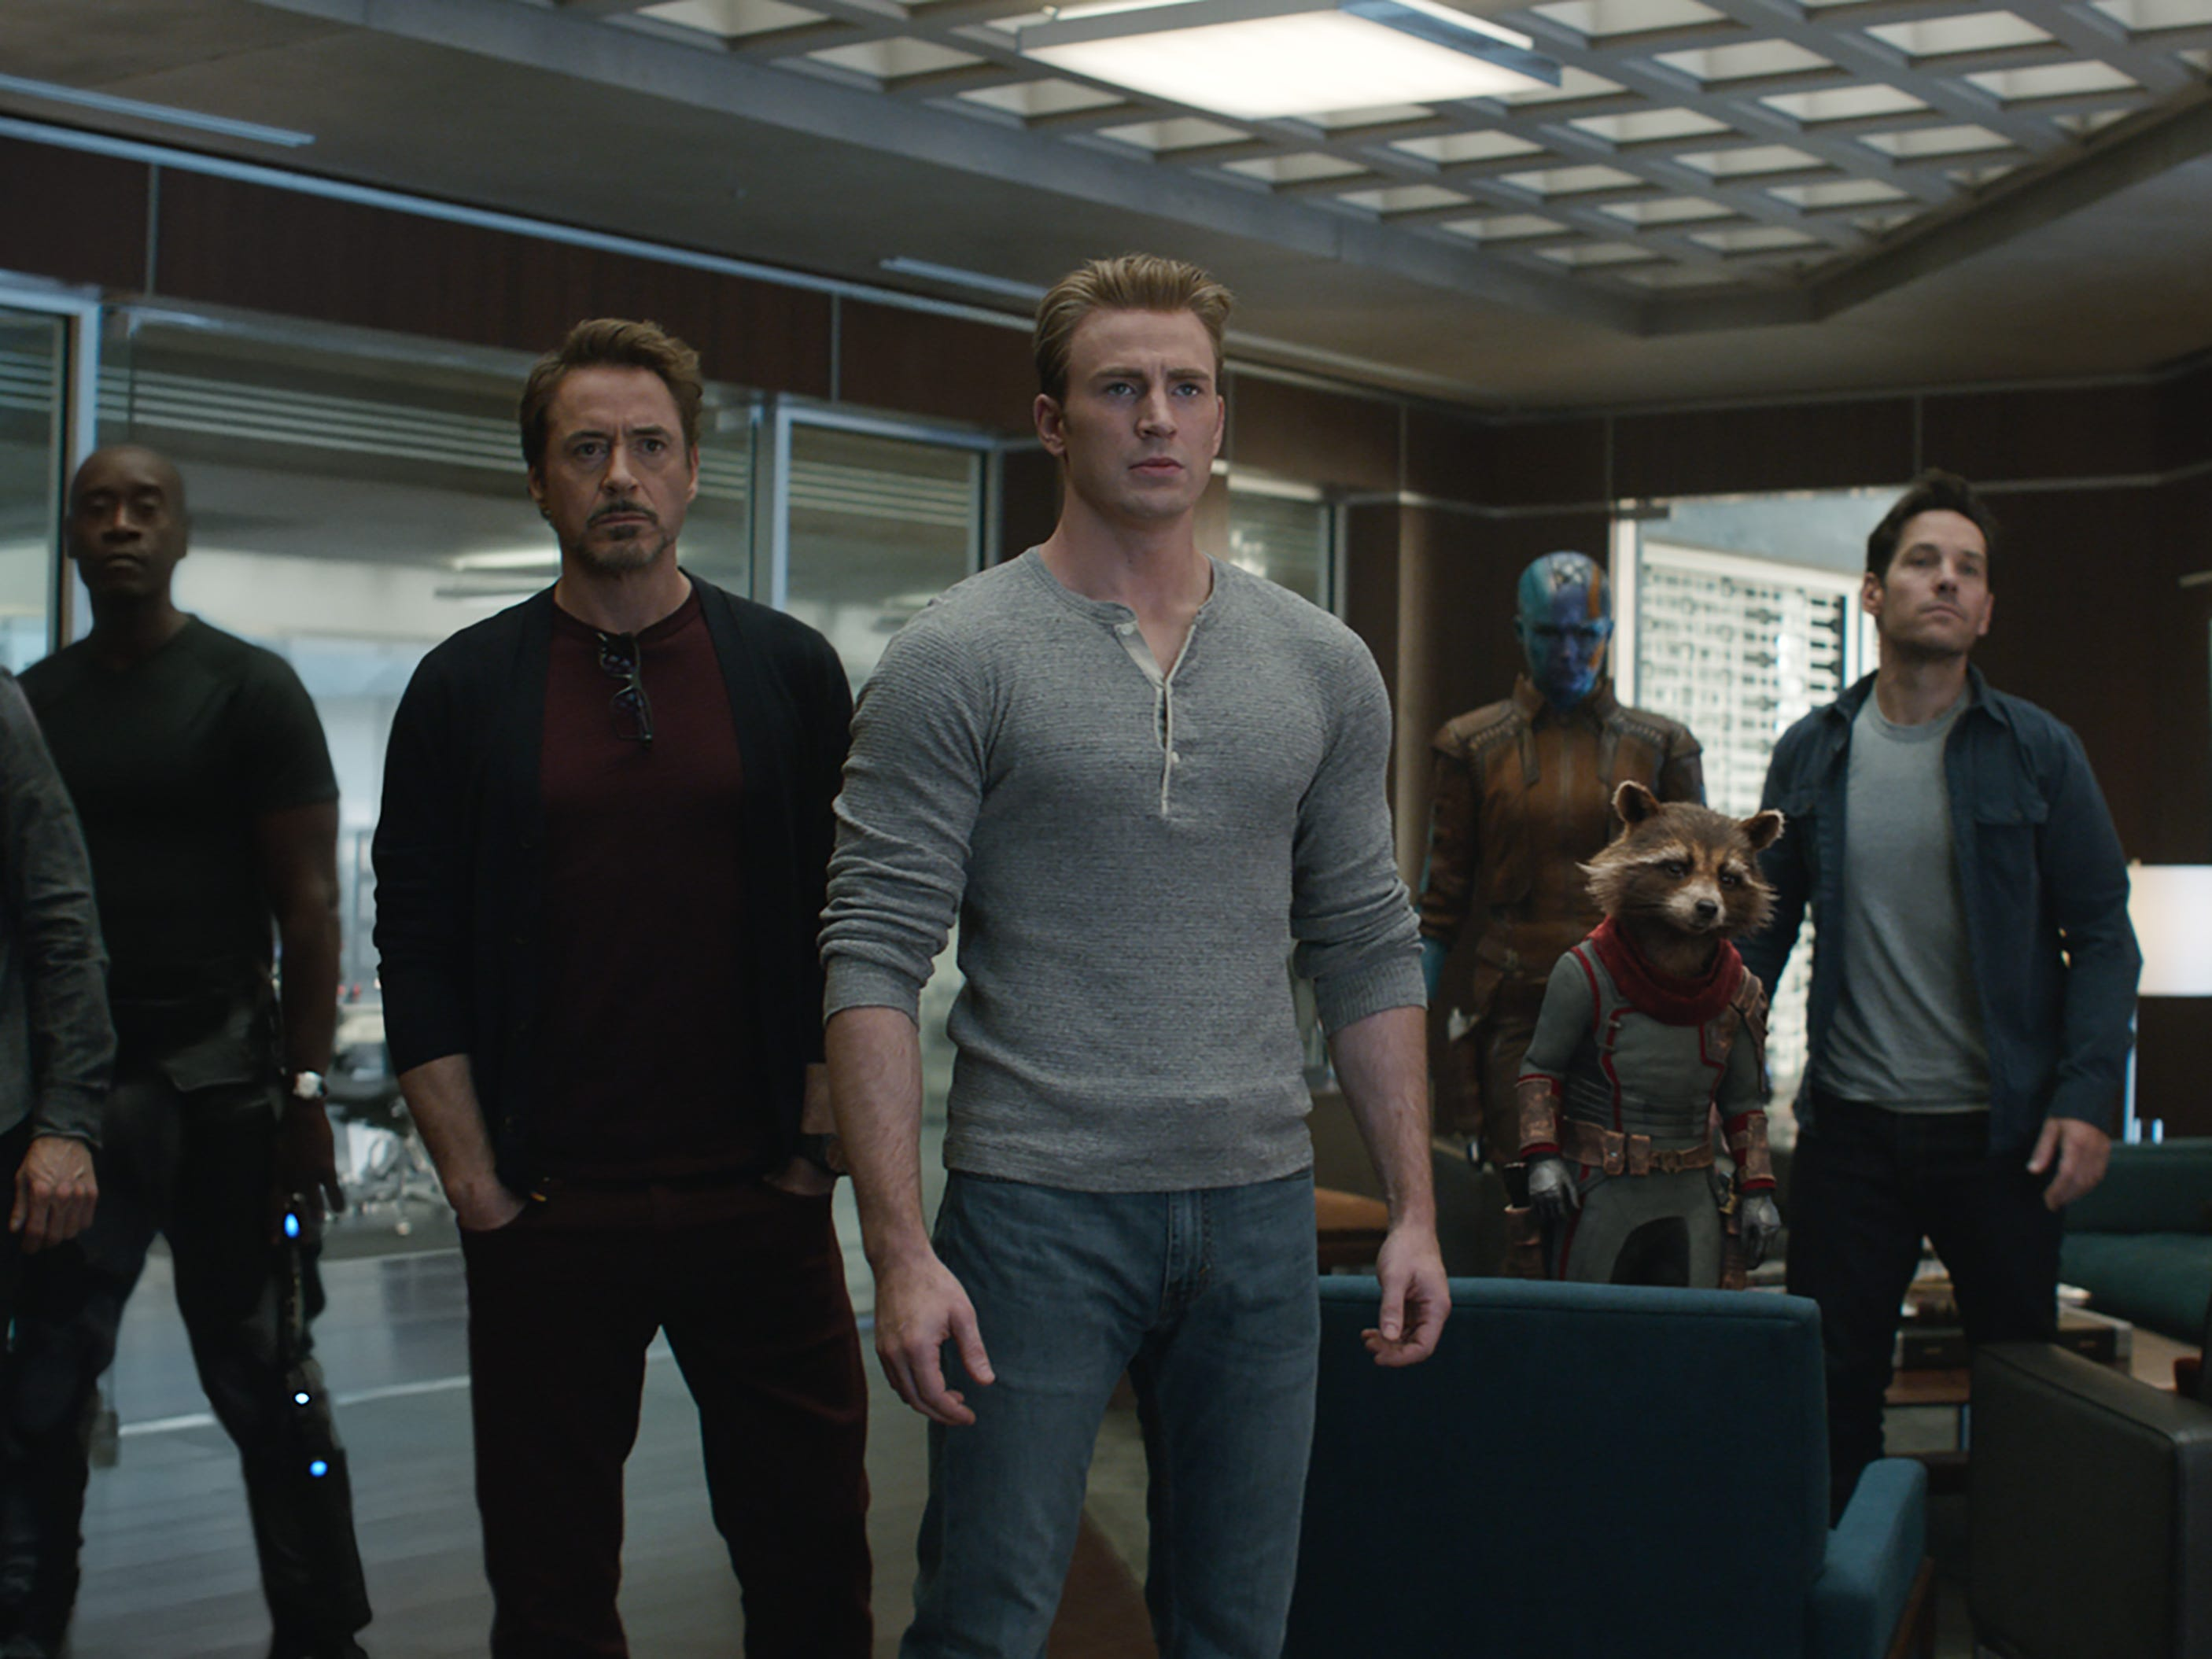 The 12 movies you must absolutely, positively see this summer (yes, including 'Avengers')